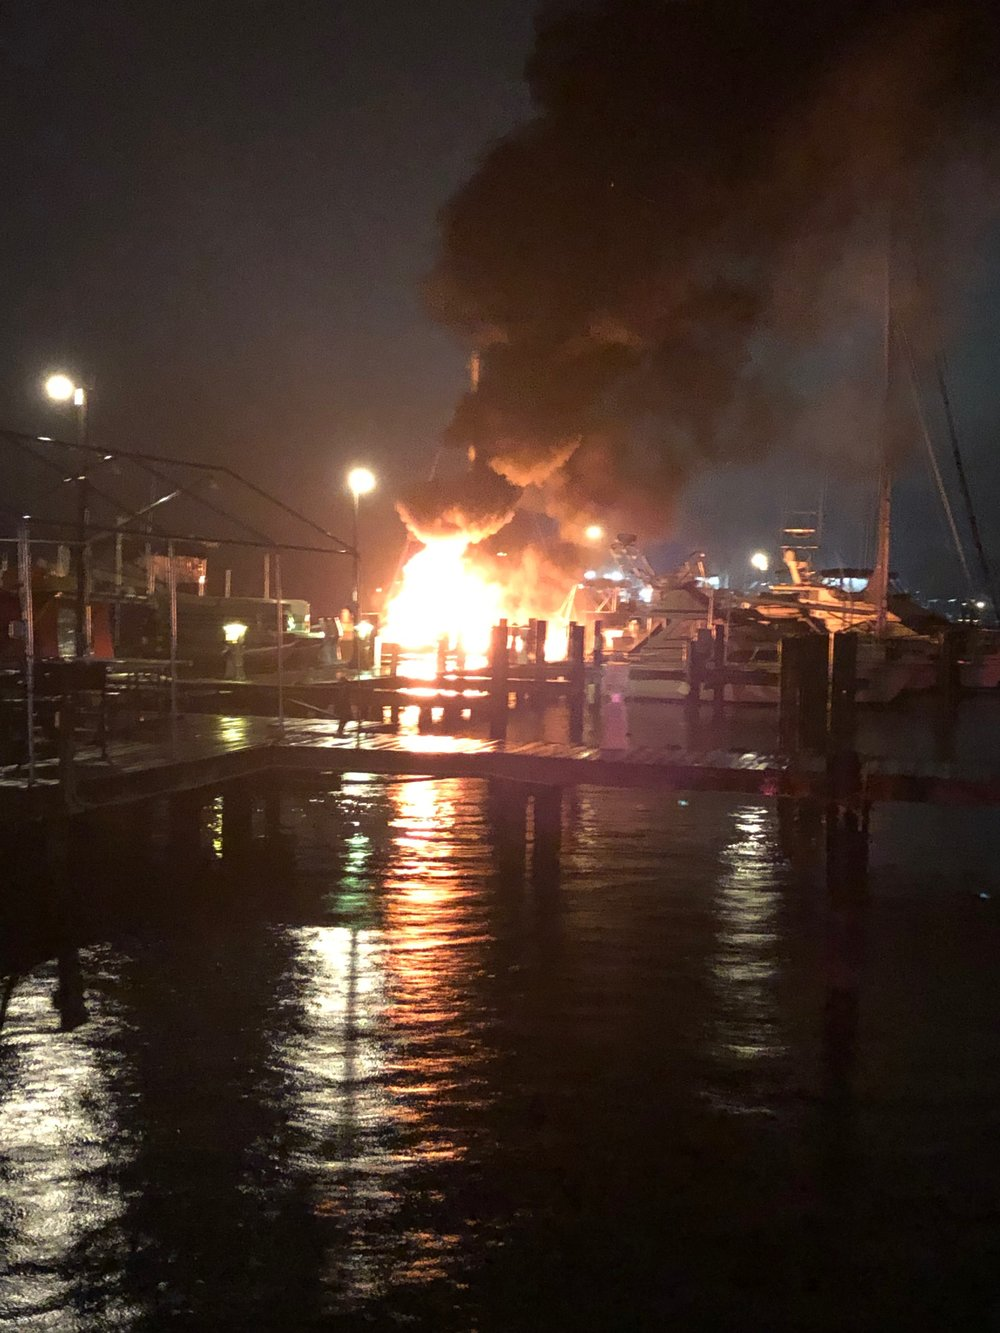 A bystander took this photo of the boat consumed by fire. Photo courtesy of the Anne Arundel County Fire Department.